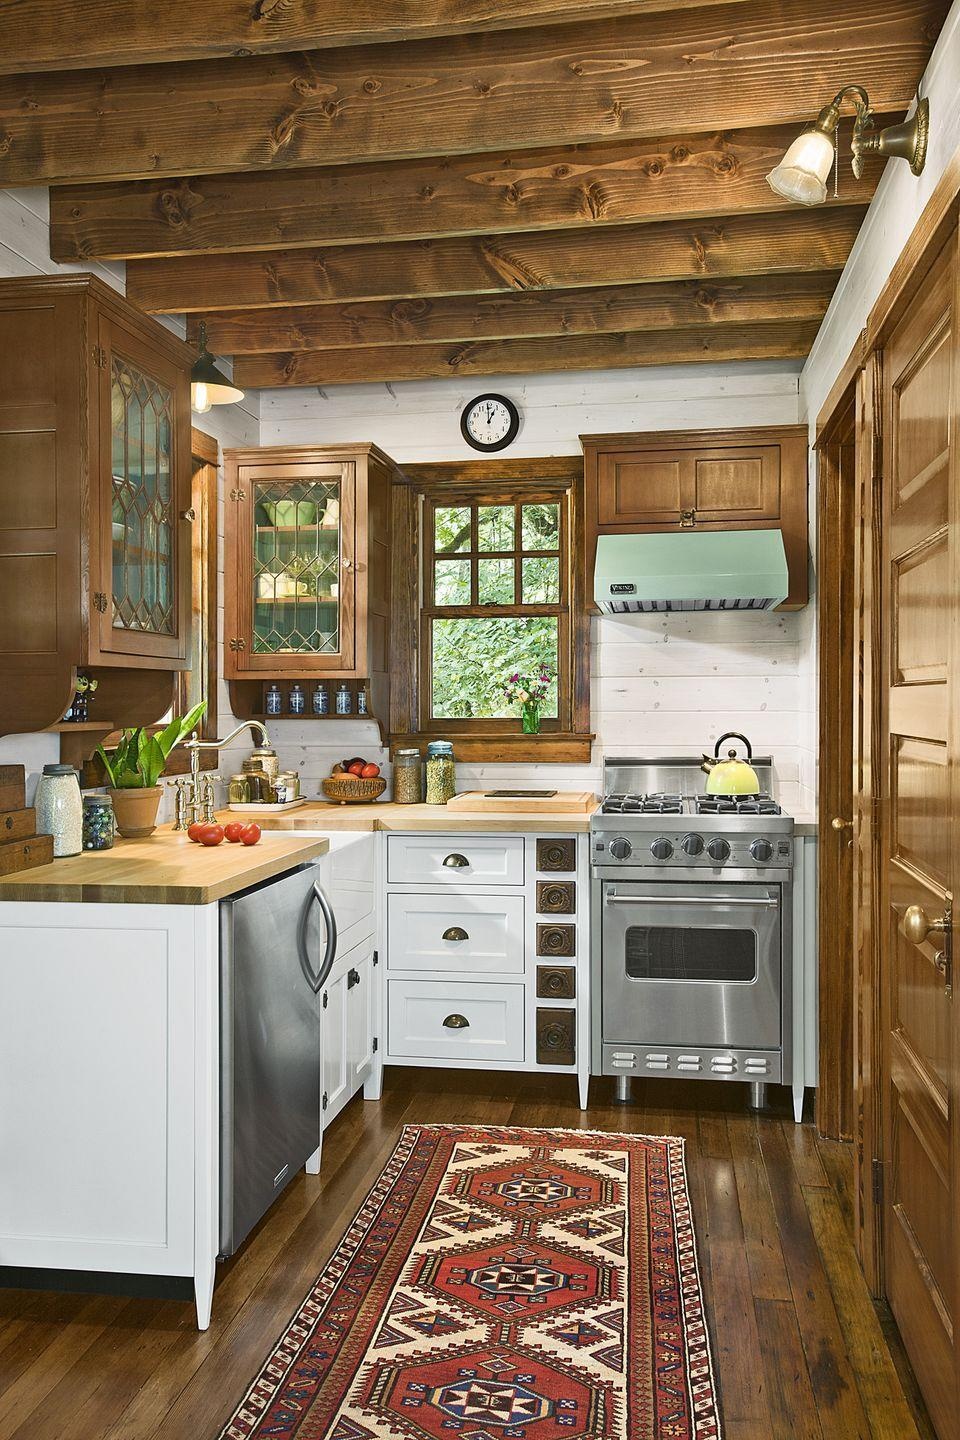 """<p>Compact appliances and smaller-scale custom cabinetry—featuring salvaged leaded fronts and old sewing drawers—are just the right size for this tiny kitchen.</p><p><a class=""""link rapid-noclick-resp"""" href=""""https://www.amazon.com/Life-Changing-Magic-Tidying-Decluttering-Organizing/dp/1607747308?tag=syn-yahoo-20&ascsubtag=%5Bartid%7C10050.g.1887%5Bsrc%7Cyahoo-us"""" rel=""""nofollow noopener"""" target=""""_blank"""" data-ylk=""""slk:SHOP BOOKS ABOUT TIDYING"""">SHOP BOOKS ABOUT TIDYING</a></p>"""